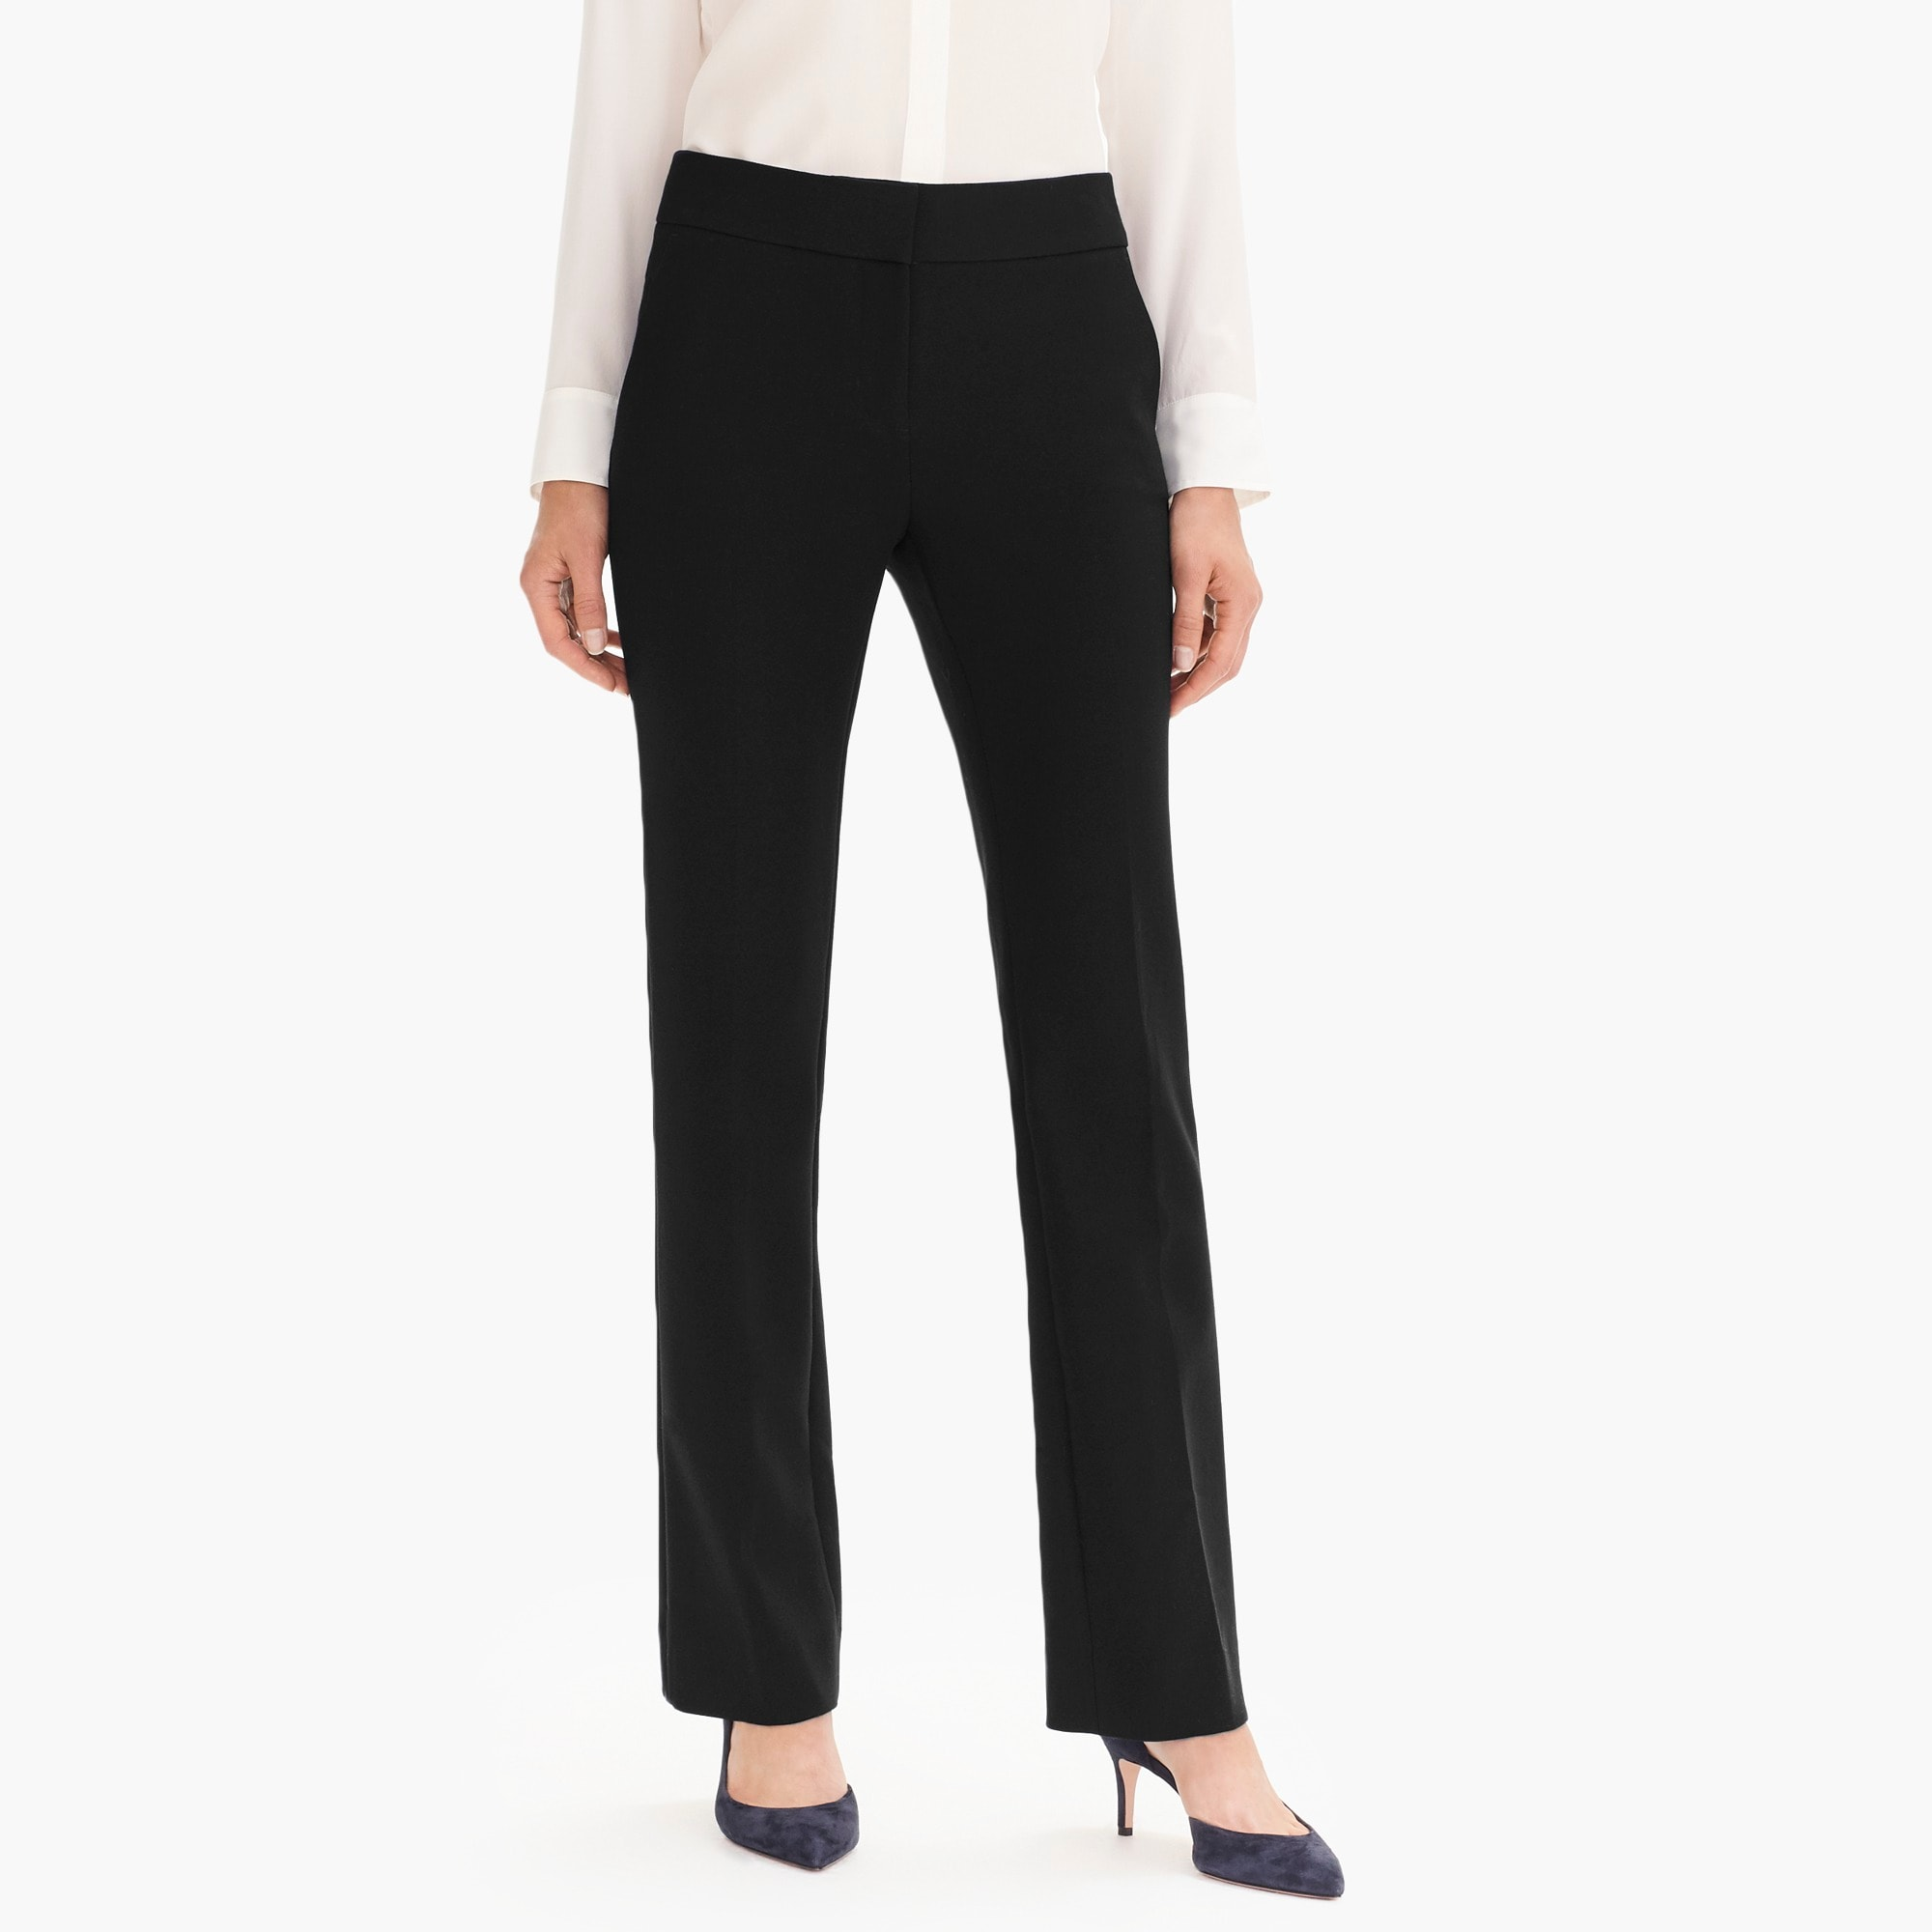 Petite Edie full-length trouser in four-season stretch